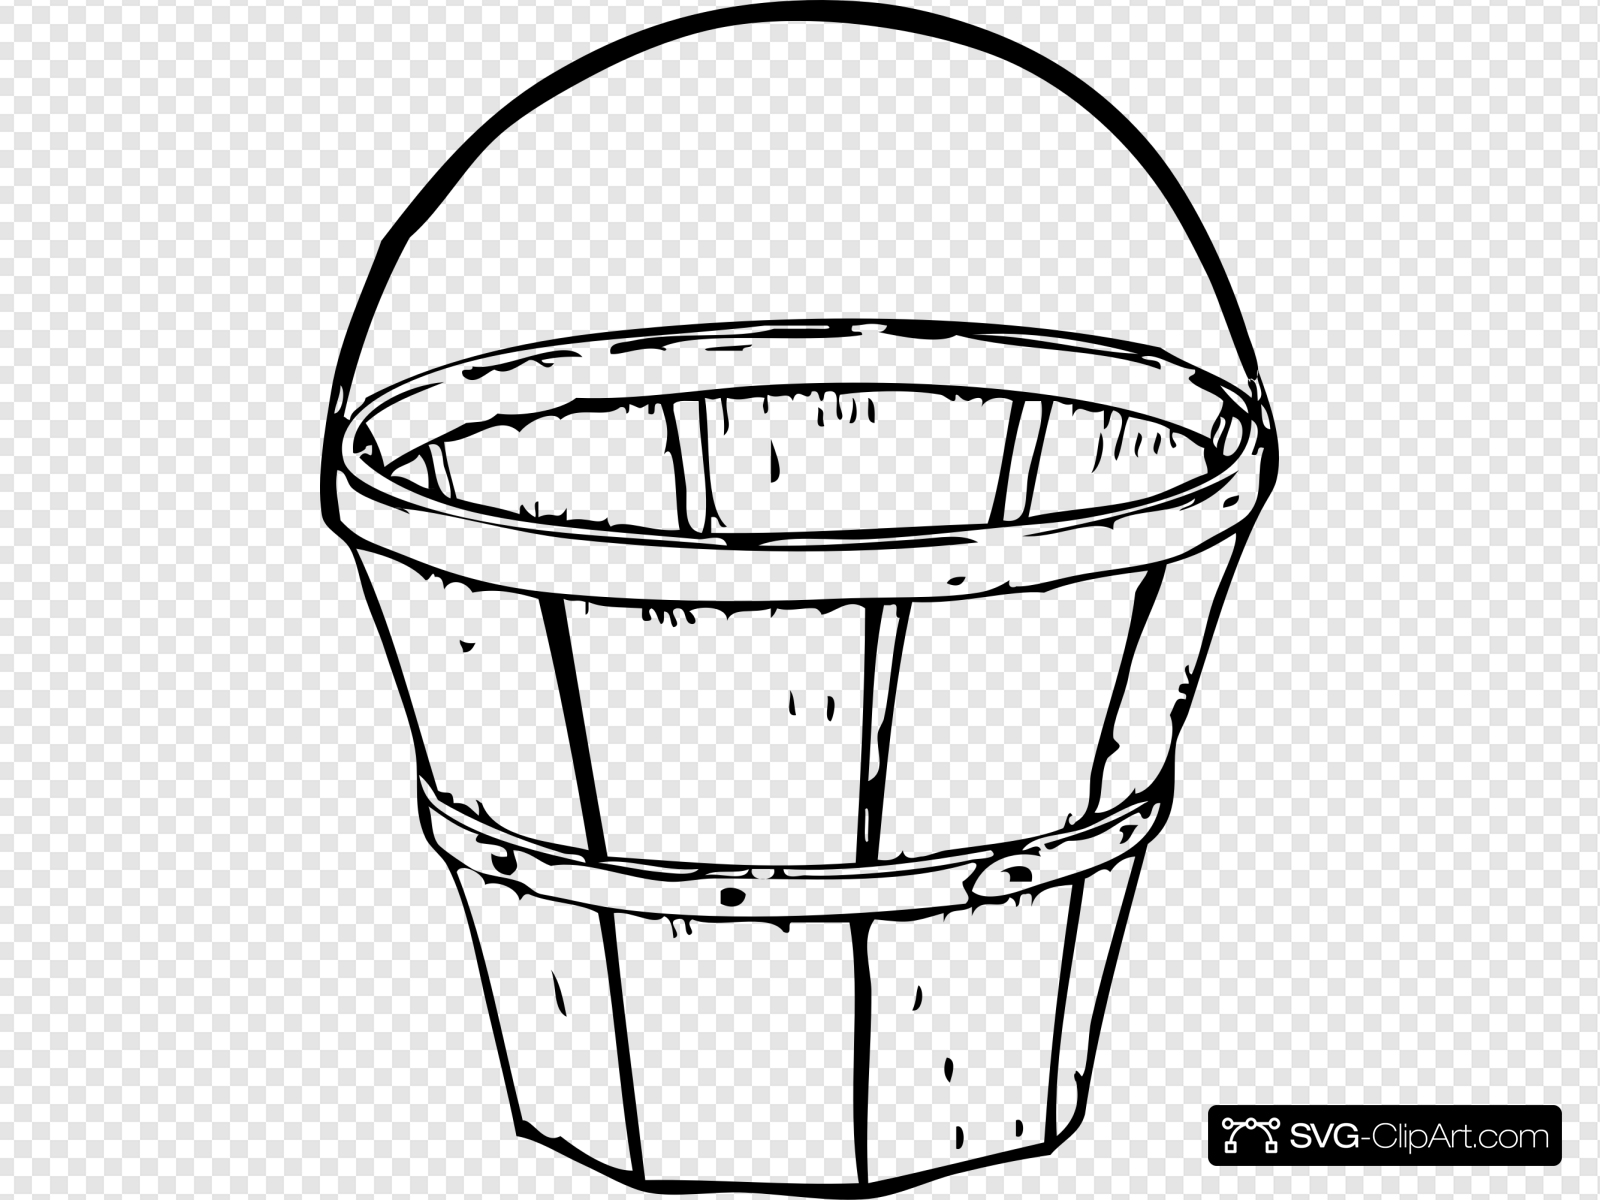 Quart Basket Clip art, Icon and SVG.